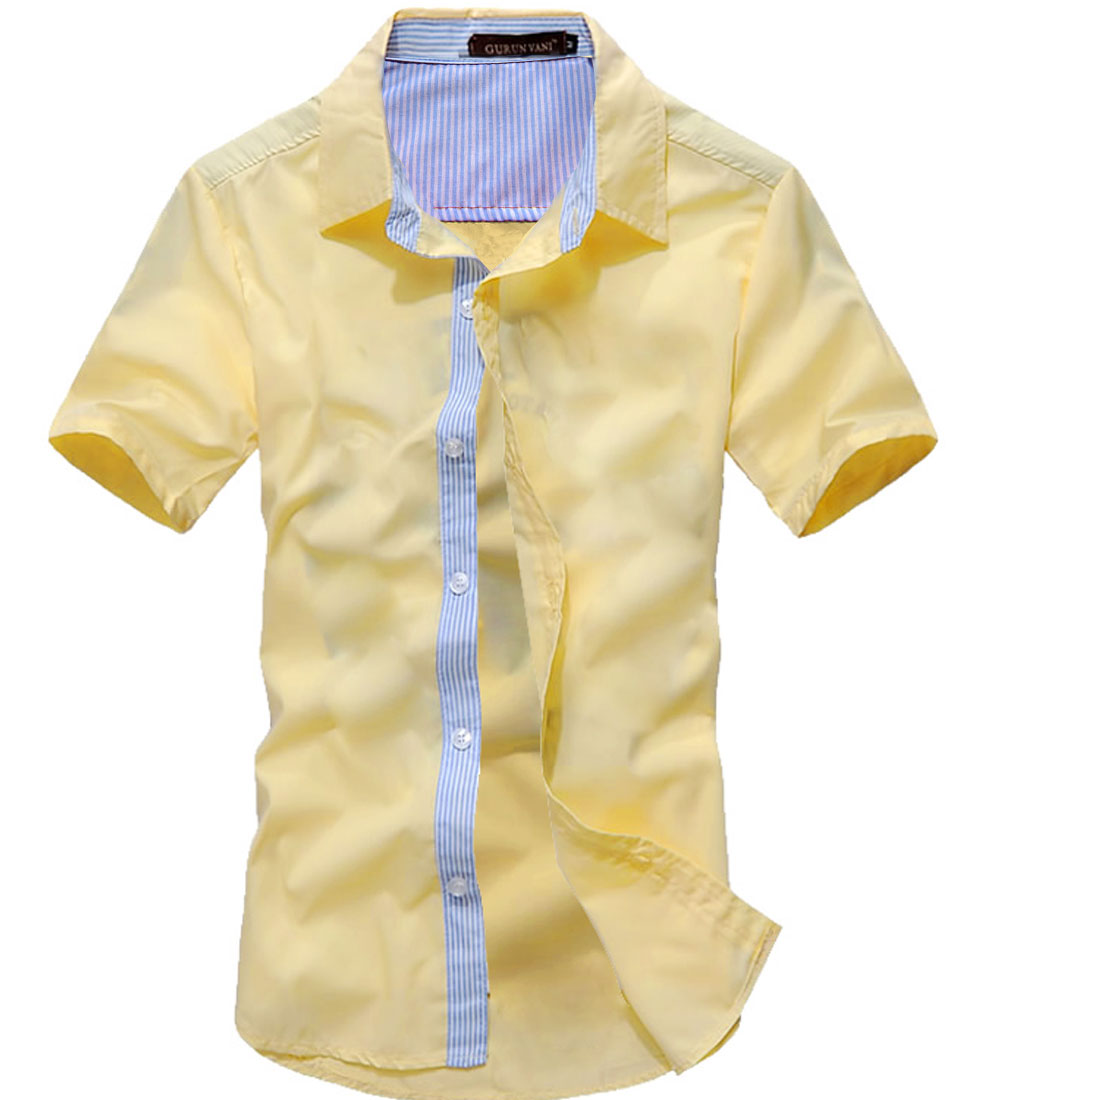 Man Stylish Buttoned Front Stripes Details Modern Shirt Light Yellow M